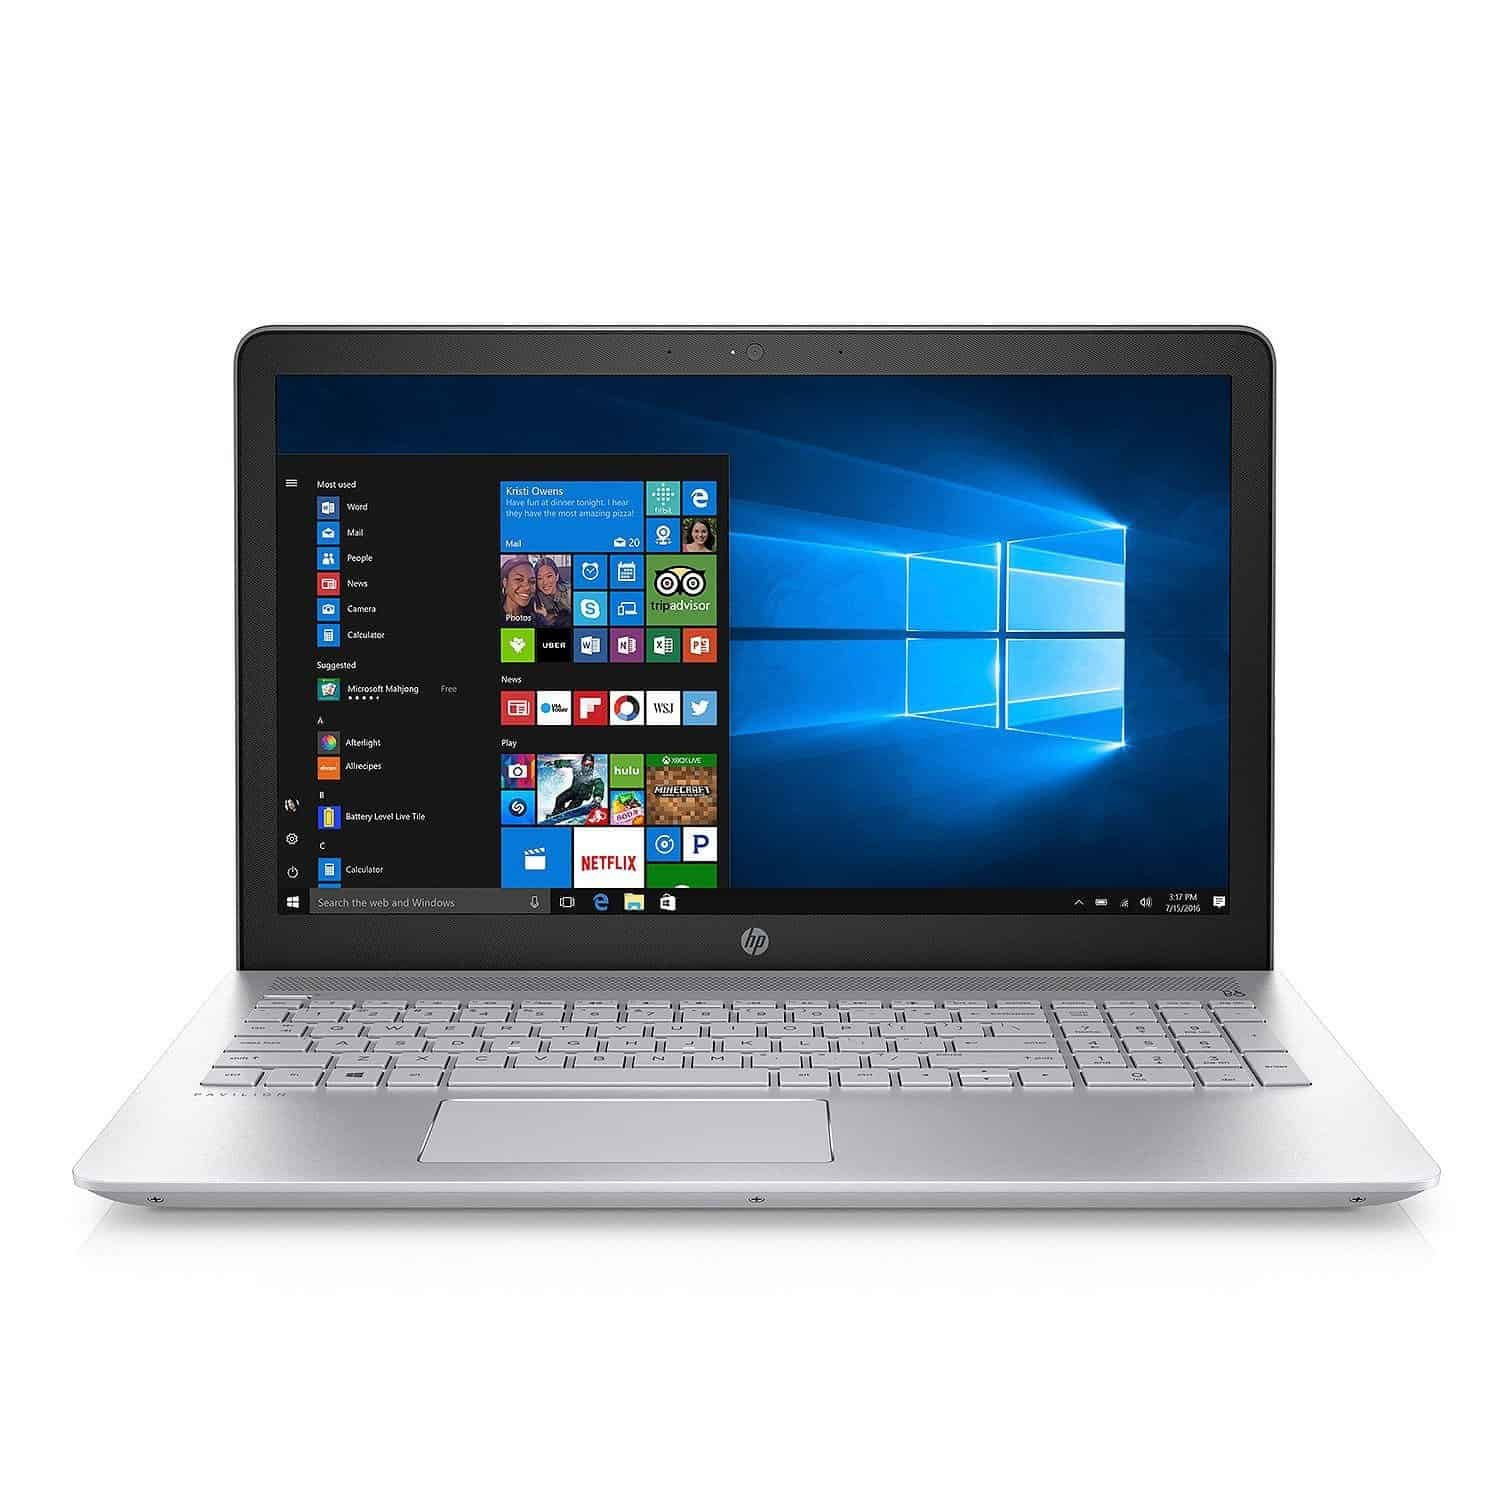 Best Laptop For Spreadsheets Intended For 10 Best Laptops For Word Processing And Excel – 2019  Blw